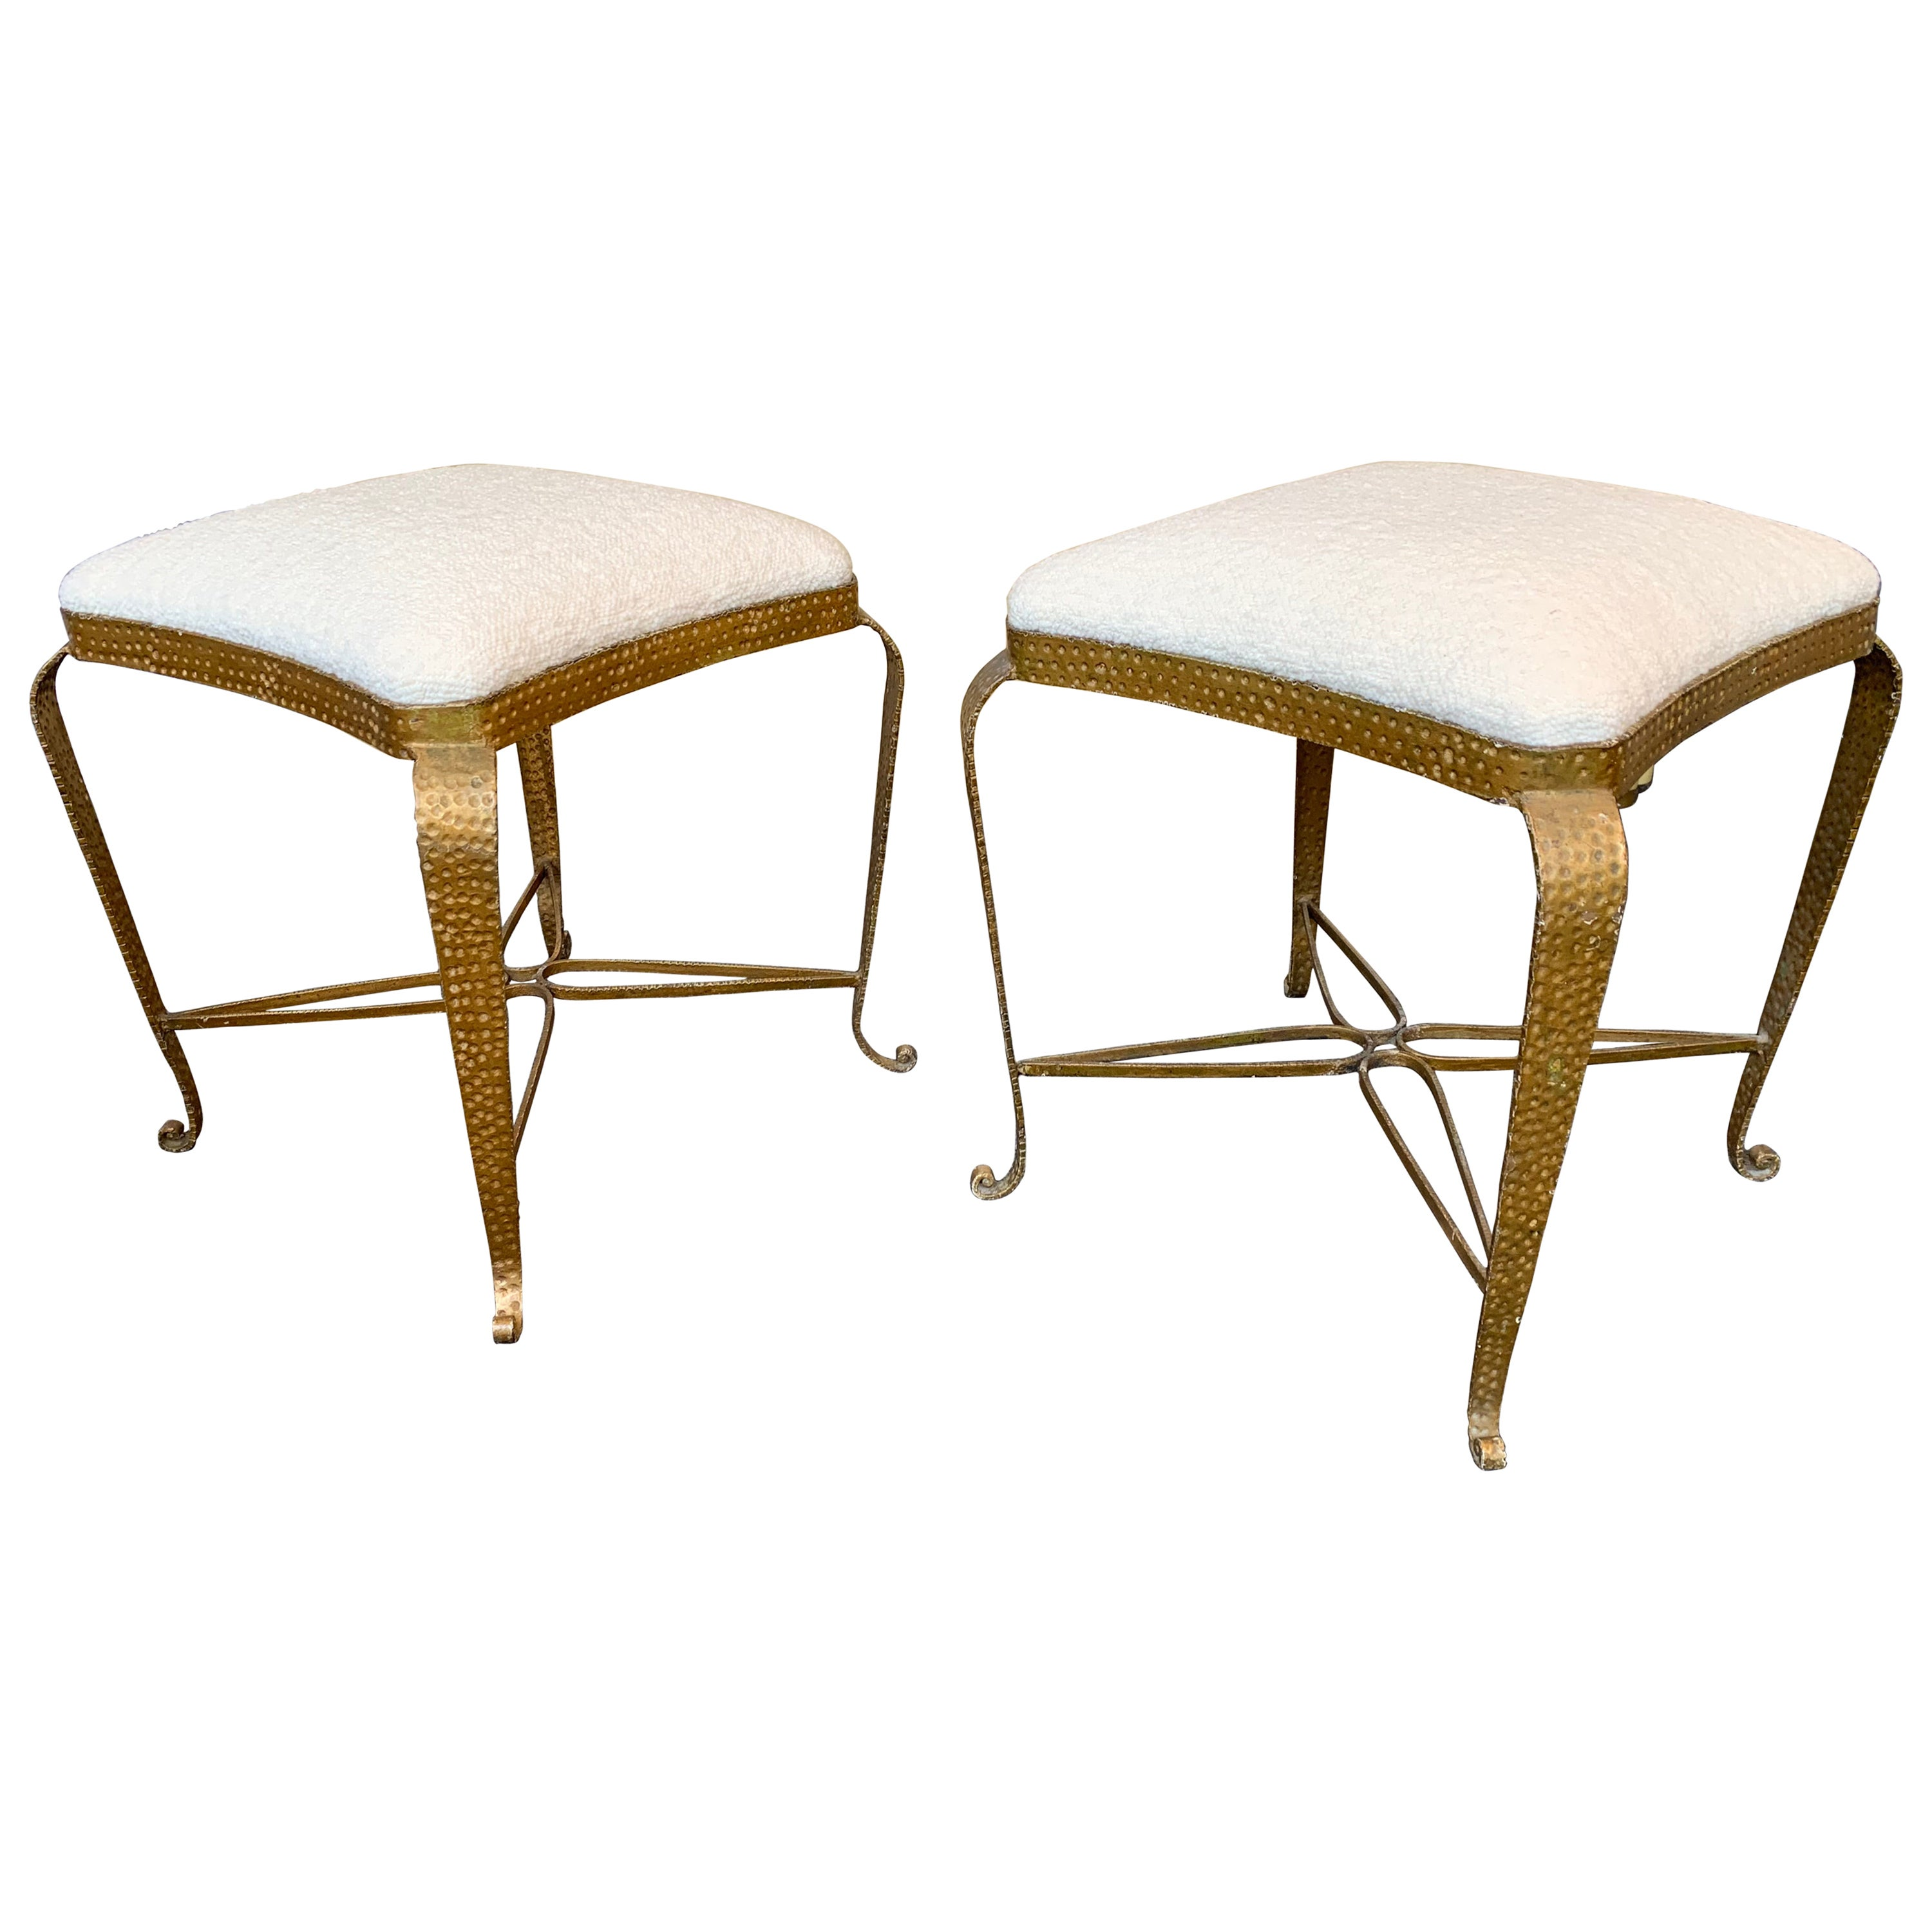 Pair of Stools Gold Leaf by Pier Luigi Colli, Italy, 1950s